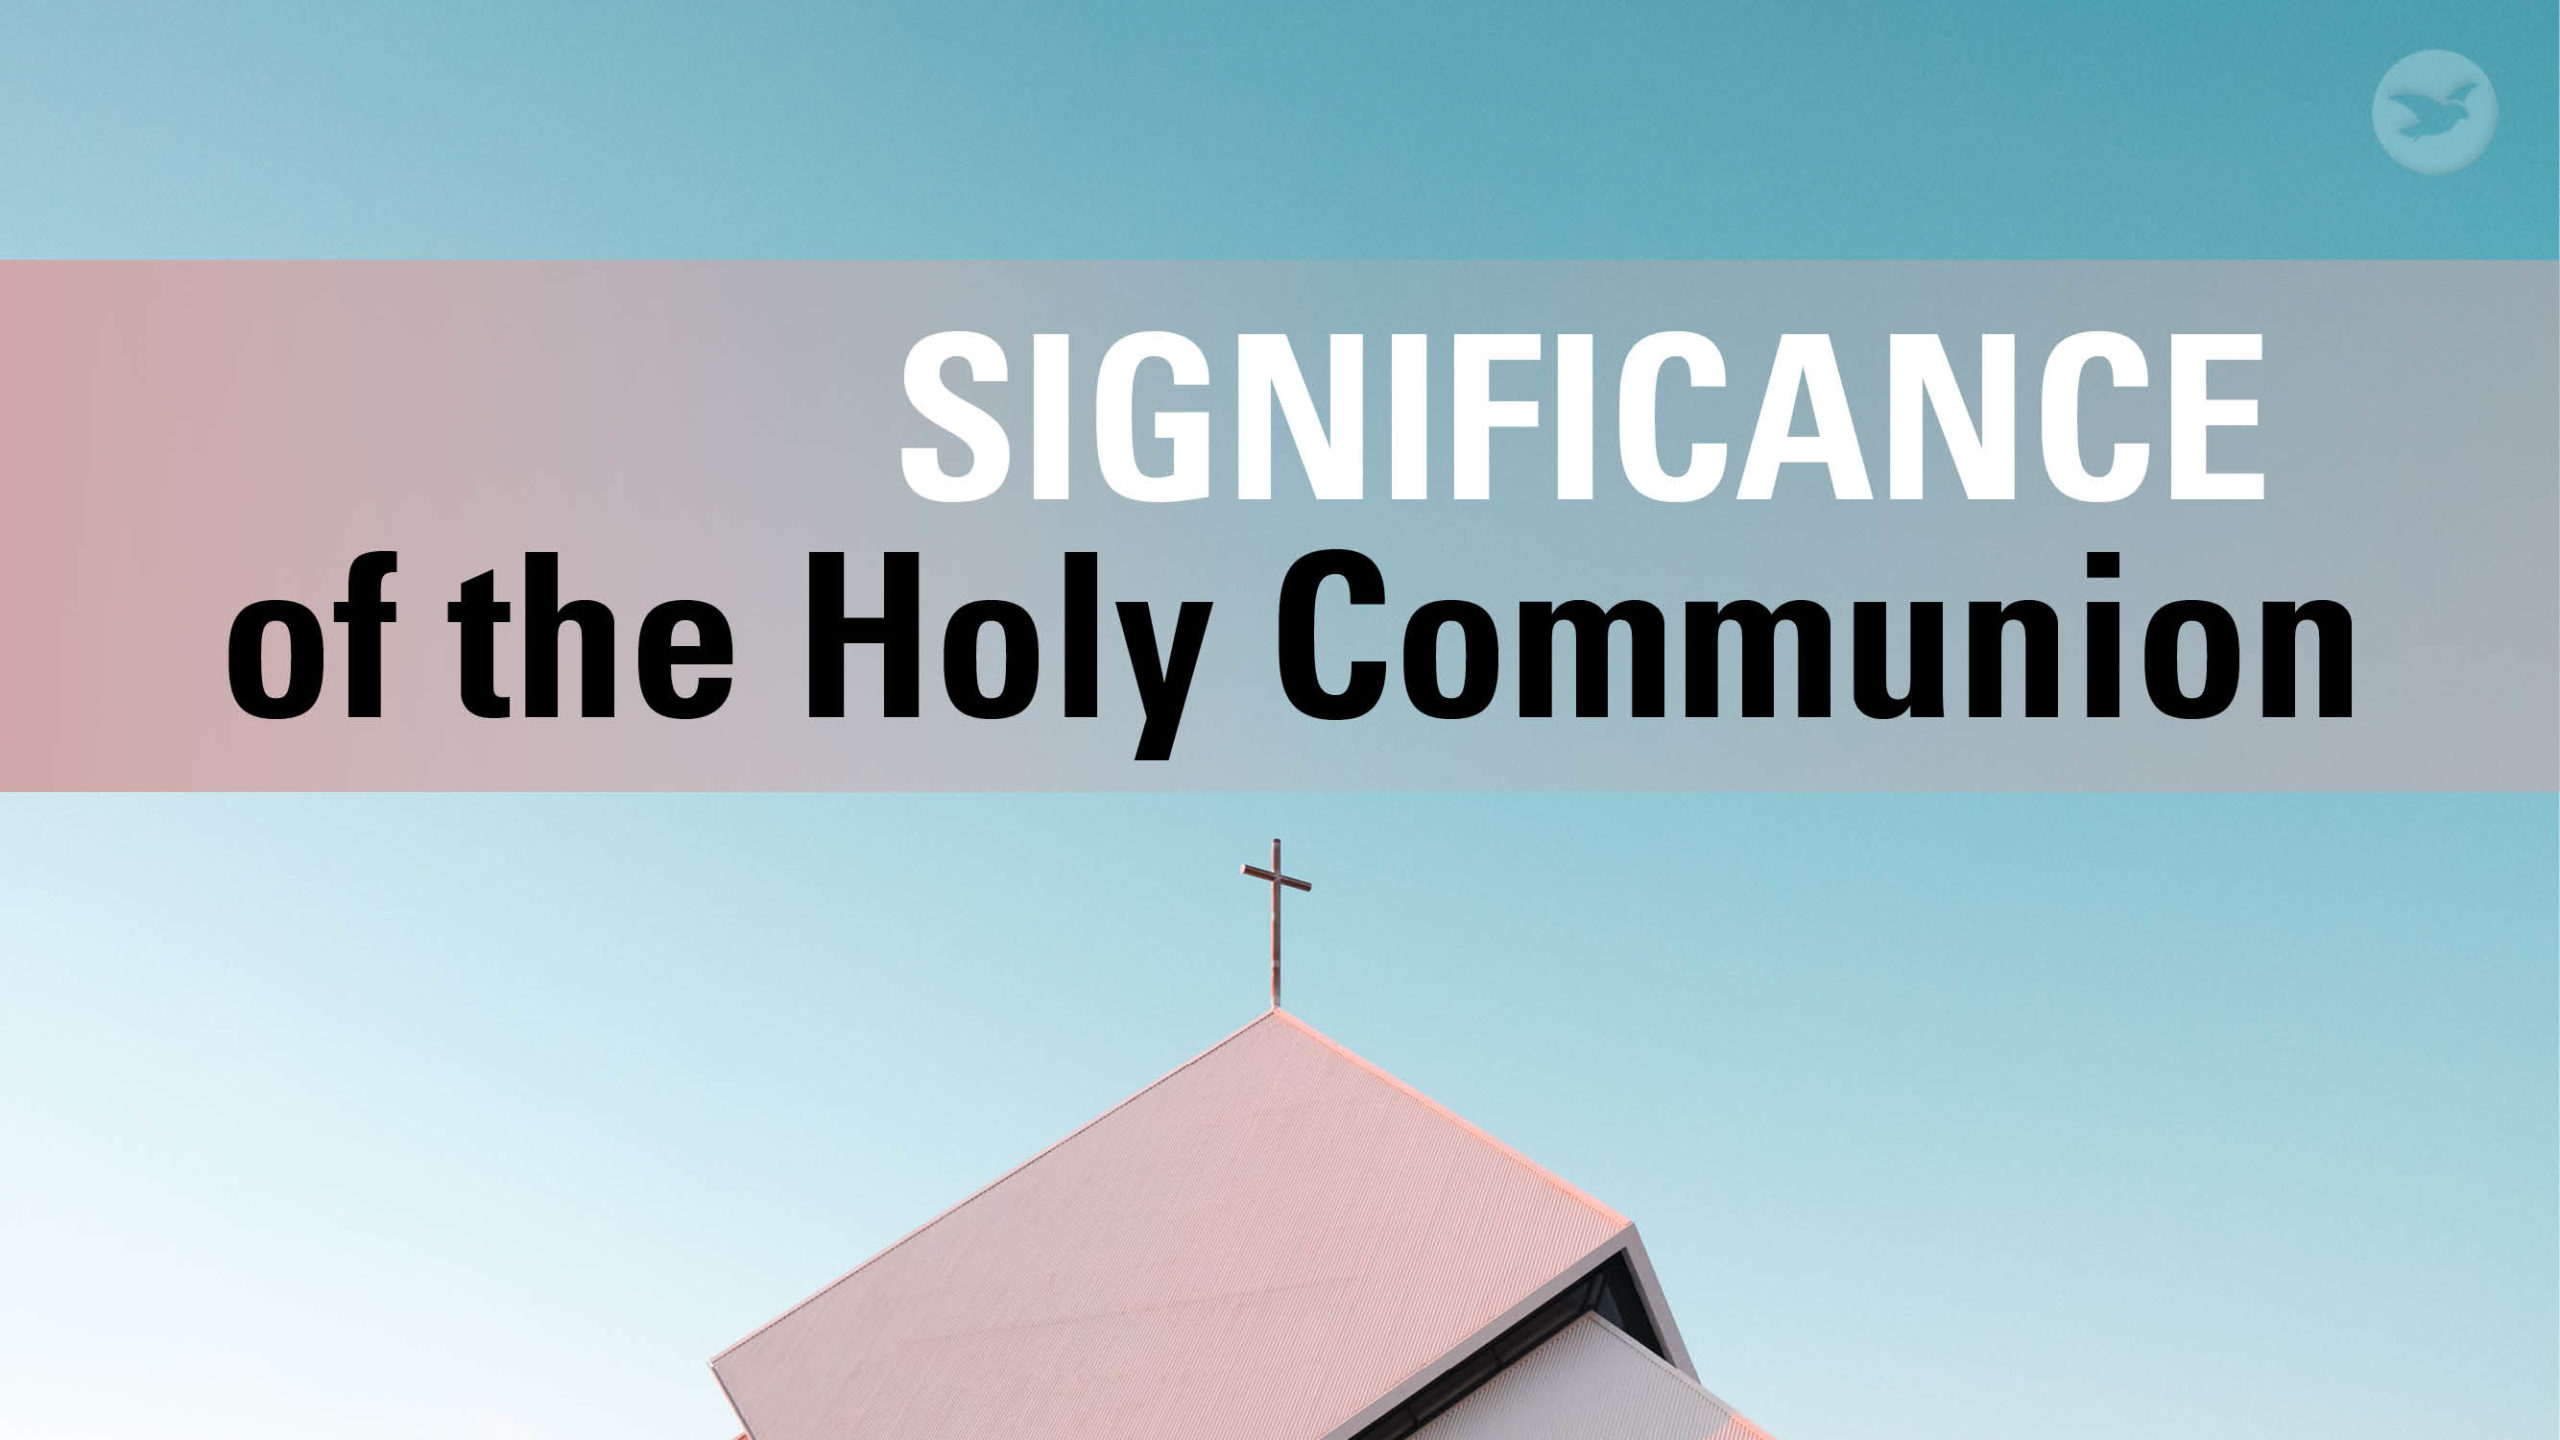 The Holy Communion is rooted in the death of our Lord Jesus. In partaking of the Holy Communion, we remember the Lord Jesus and proclaim His death. It is a sacred occasion observed in a worthy manner.